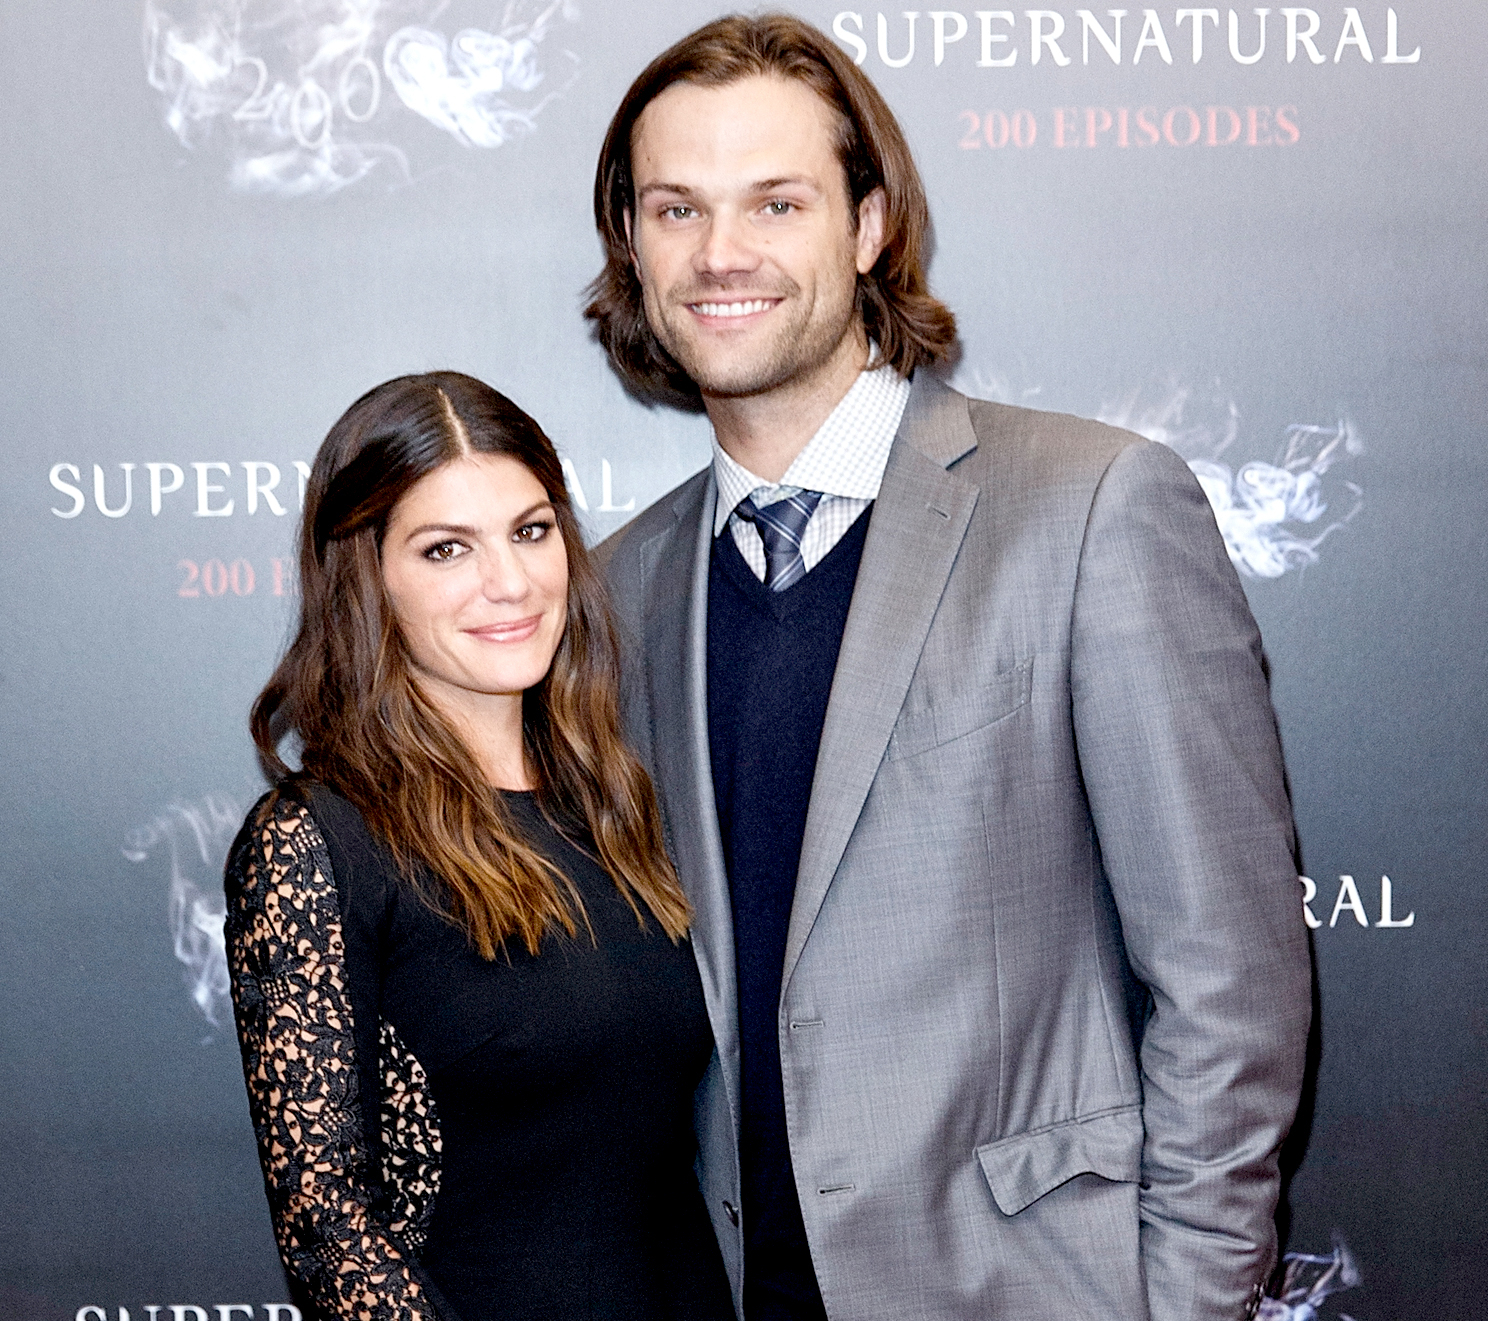 Genevieve Padalecki and Jared Padalecki celebrates the 200th episode of 'Supernatural' at Fairmont Pacific Rim Hotel on October 18, 2014 in Vancouver, Canada.